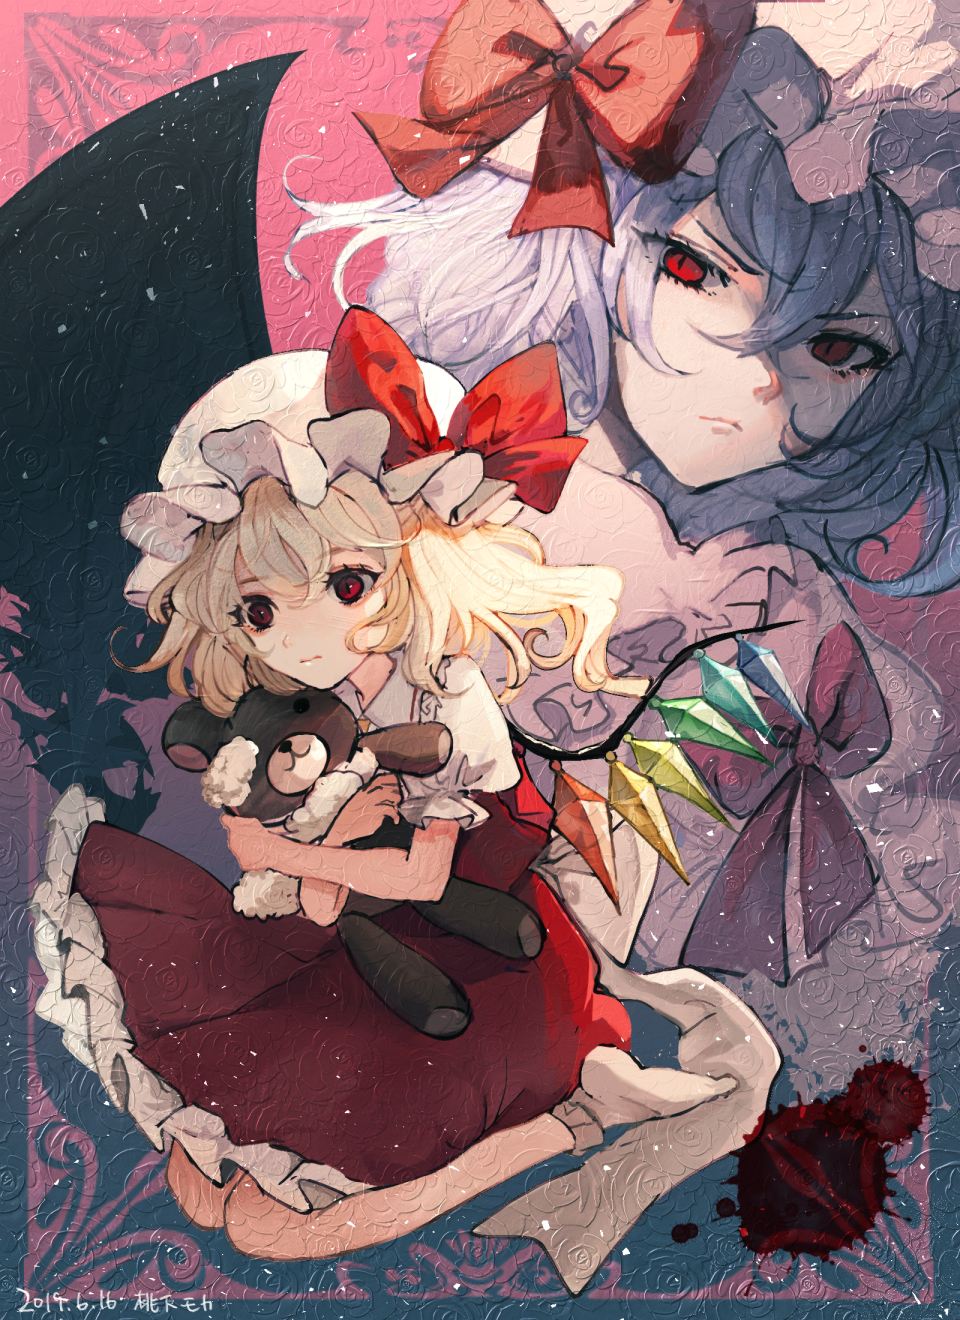 >:( 2girls bangs bat_wings blonde_hair blue_hair bow commentary_request crystal dated dress eyebrows_visible_through_hair flandre_scarlet hair_between_eyes hat hat_bow highres holding holding_stuffed_animal long_hair looking_at_viewer mob_cap mochacot multiple_girls no_shoes one_side_up petticoat pink_background puffy_short_sleeves puffy_sleeves red_bow red_eyes red_skirt red_vest remilia_scarlet short_hair short_sleeves siblings sisters sitting skirt skirt_set socks stuffed_animal stuffed_toy teddy_bear touhou v-shaped_eyebrows vest wariza white_dress white_headwear white_legwear wings